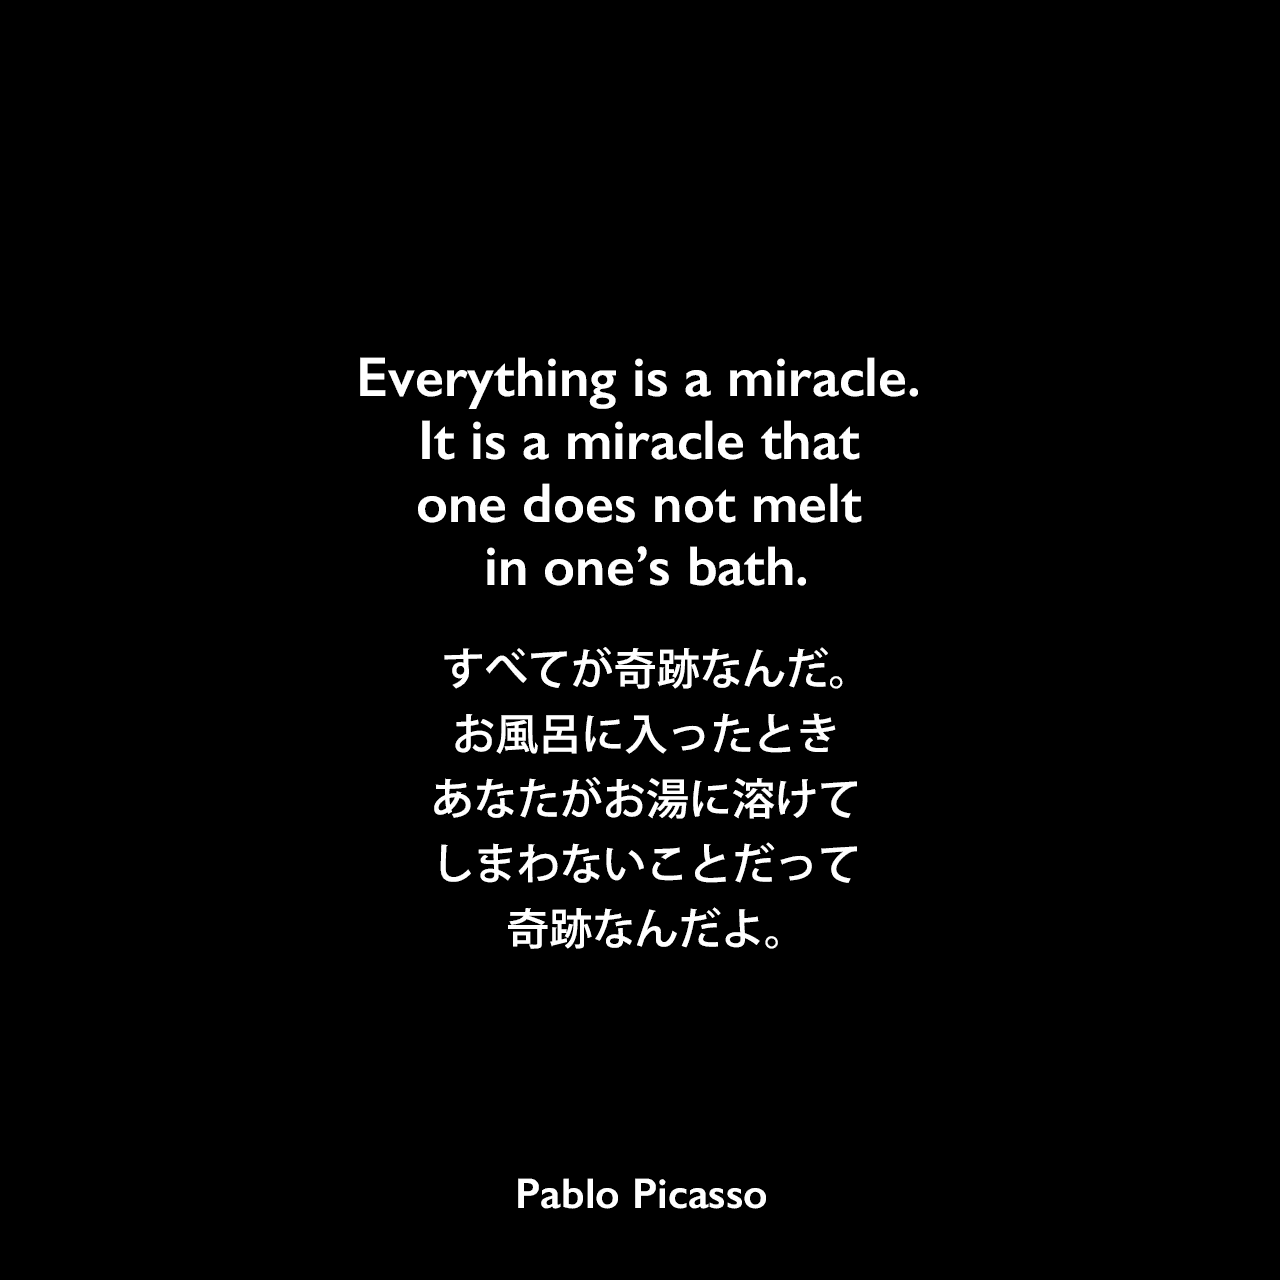 Everything is a miracle. It is a miracle that one does not melt in one's bath.すべてが奇跡なんだ。お風呂に入ったとき、あなたがお湯に溶けてしまわないことだって奇跡なんだよ。Pablo Picasso